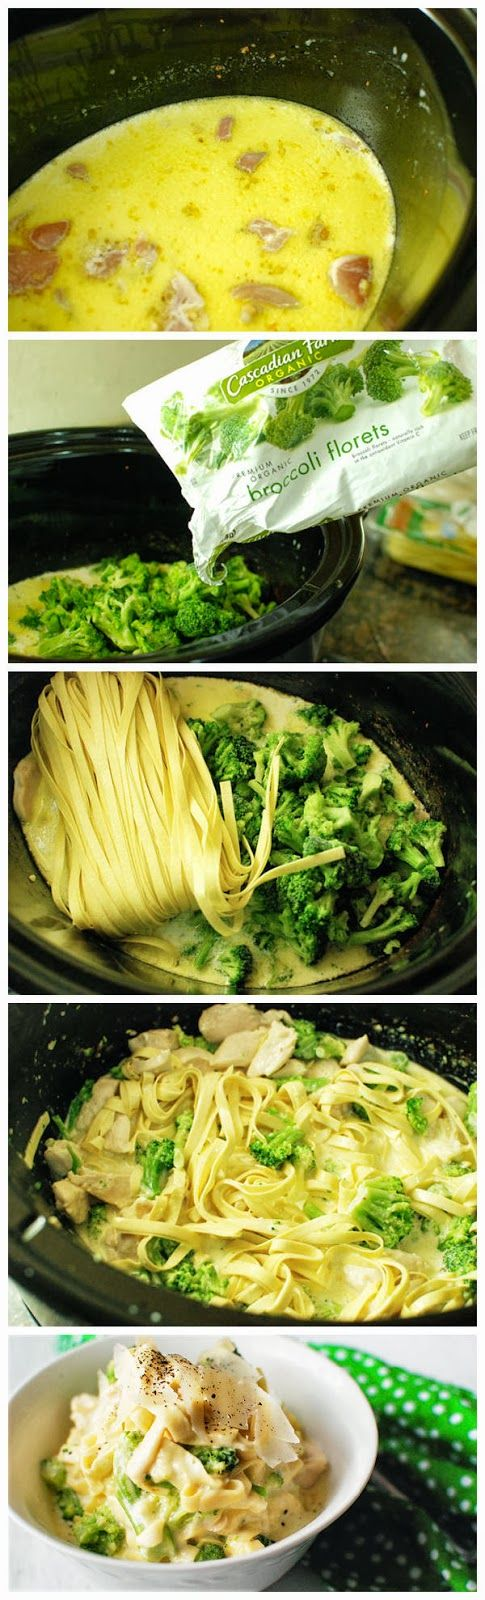 Chicken fettuccine, Slow cooker chicken and Fettuccine ...